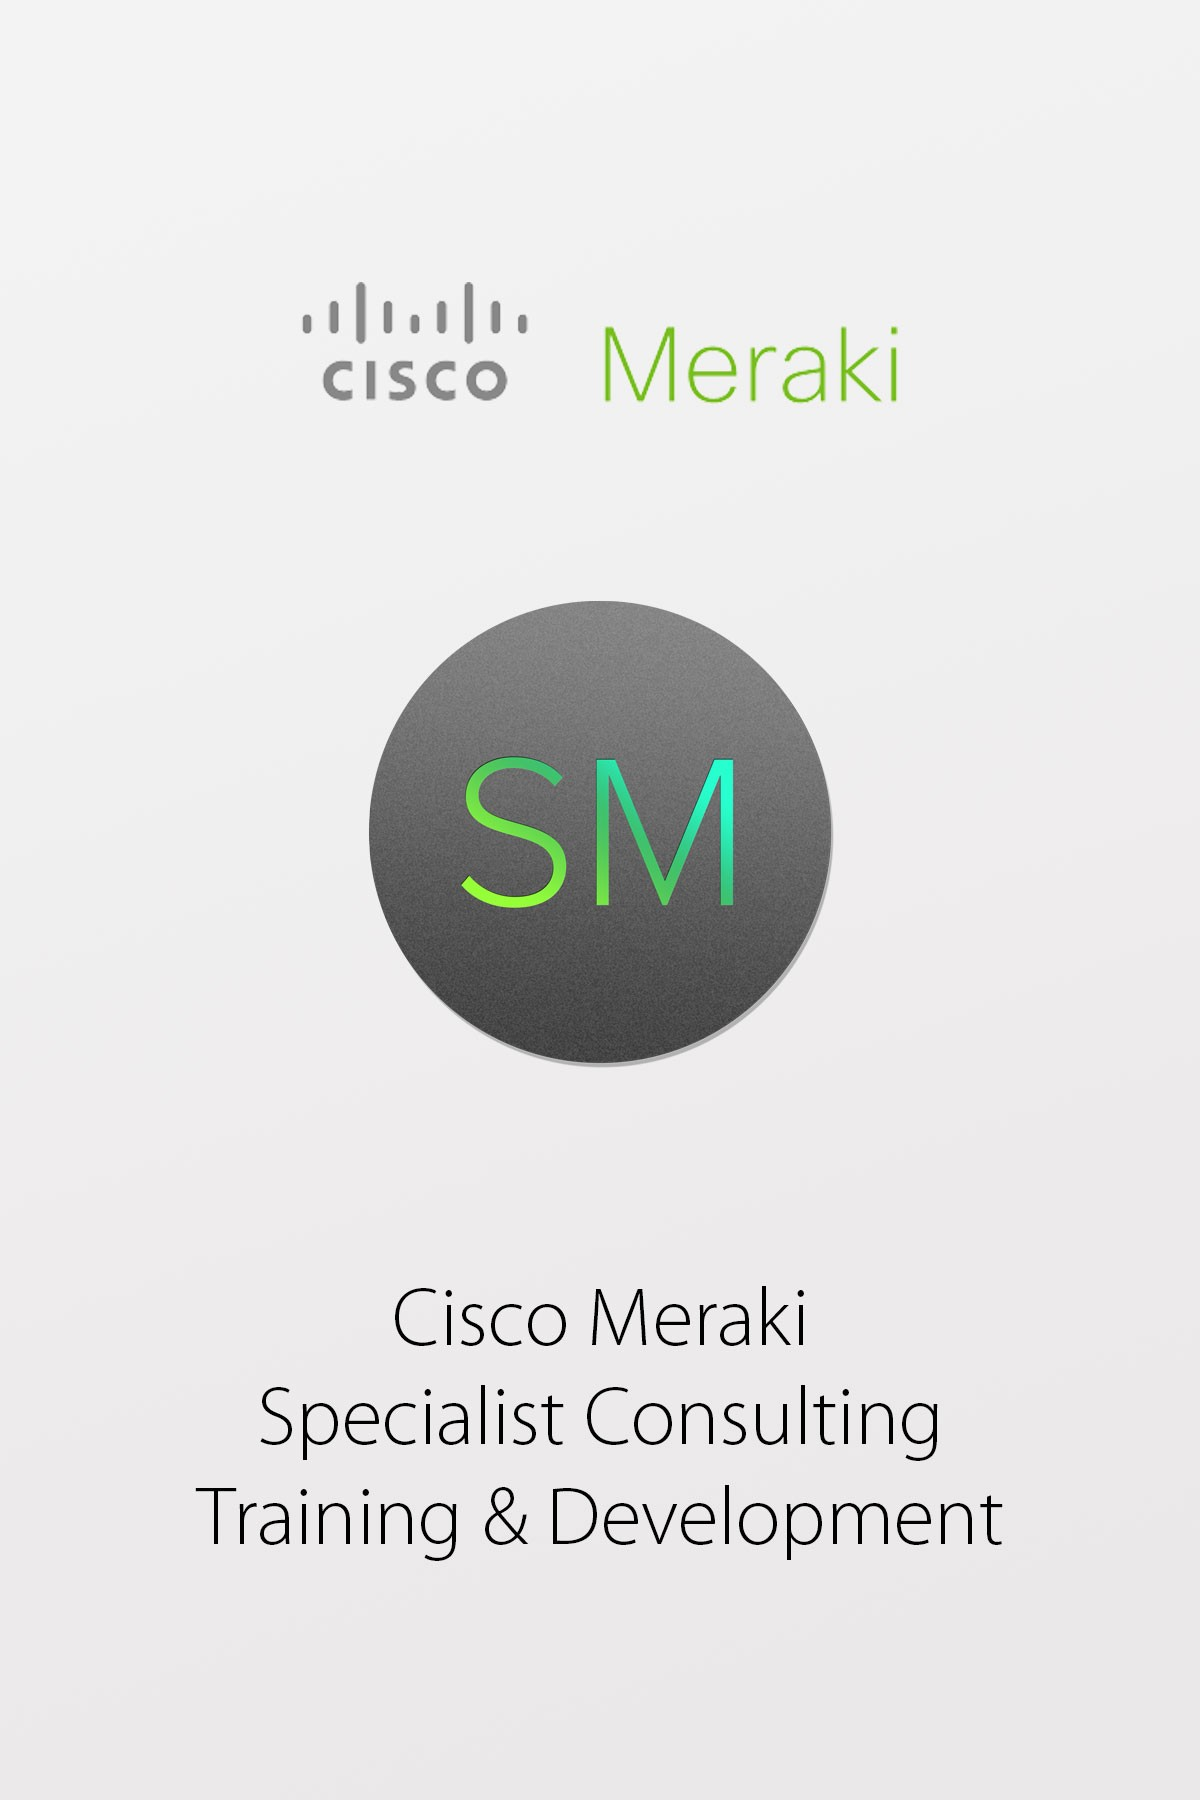 Cisco Meraki Systems Manager - Specialist Consulting, Training & Development